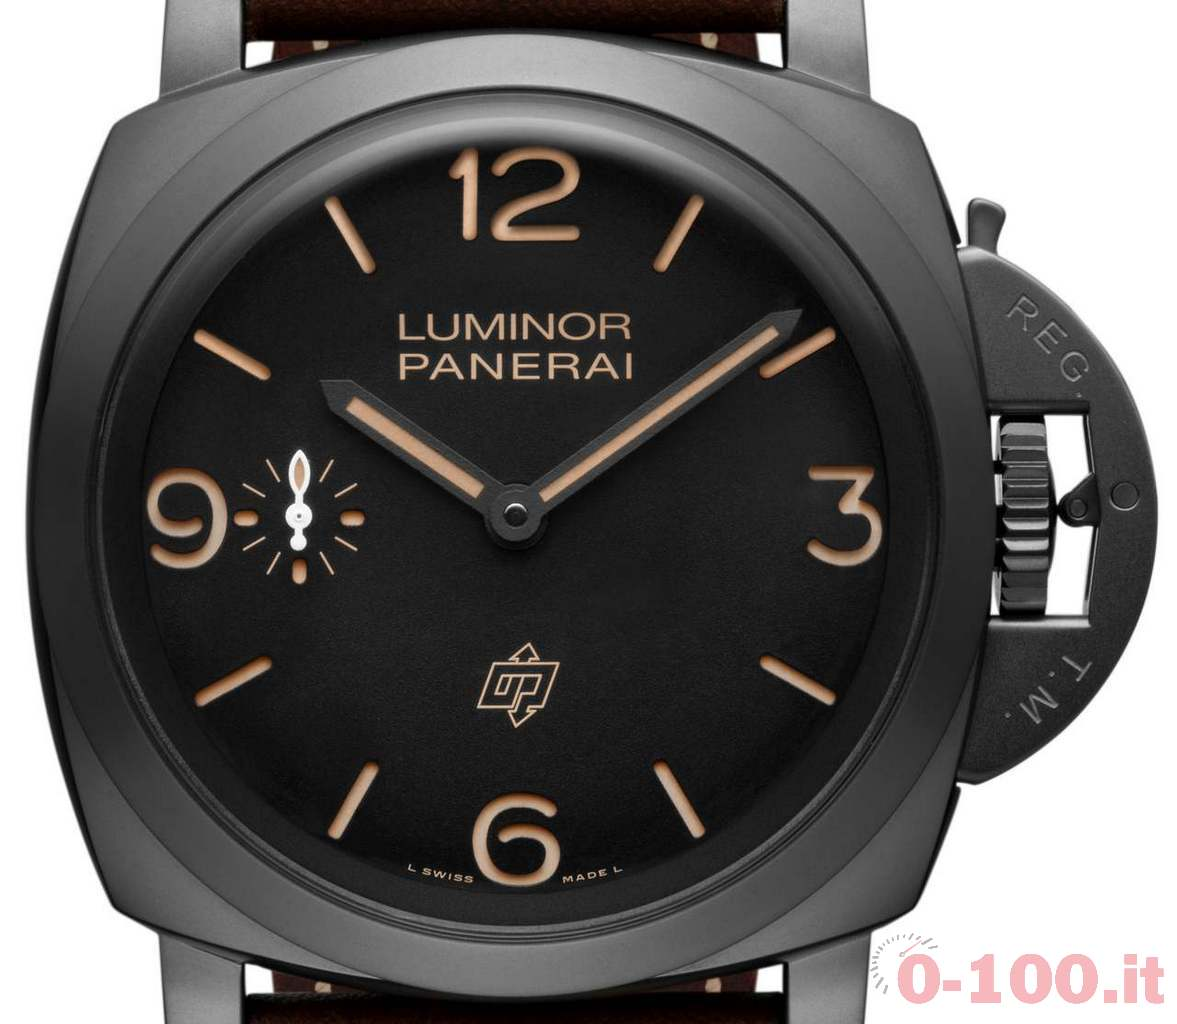 watches-wonders-2015-officine-panerai-luminor-3-days-titanio-dlc-47mm-special-edition-prezzo-price_0-1006